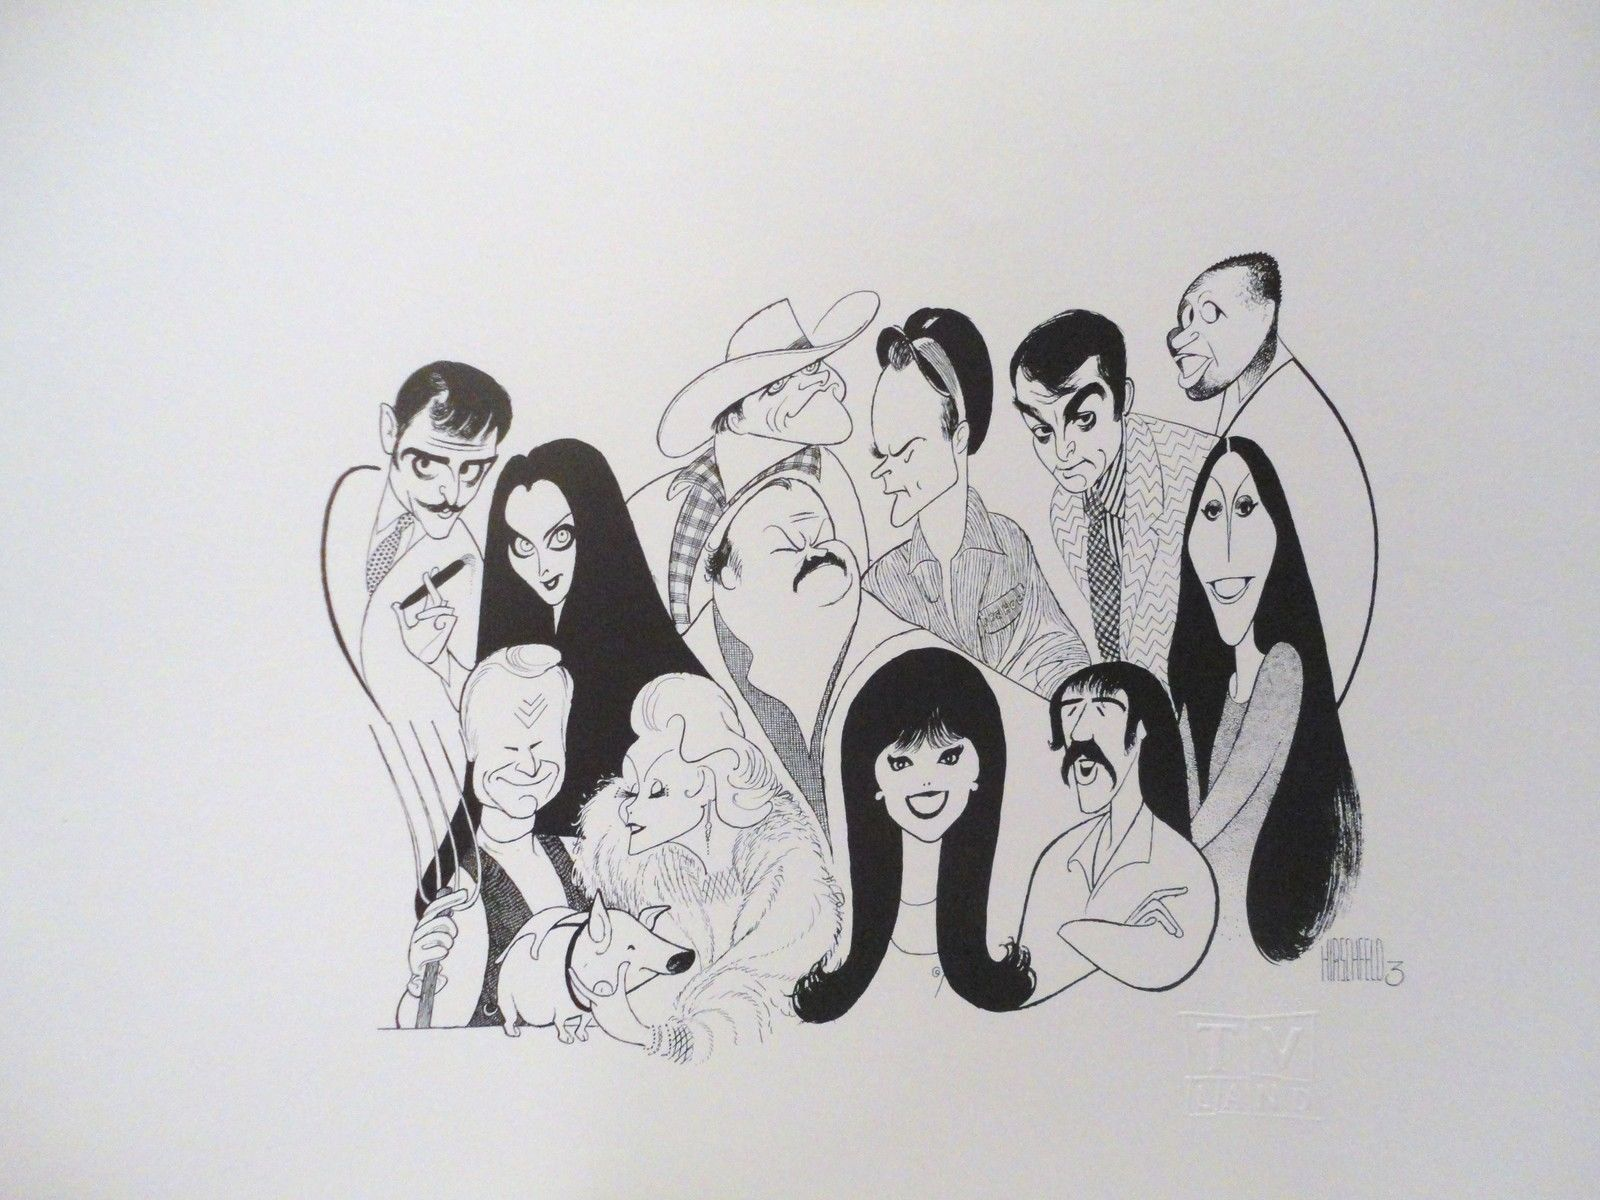 Al Hirschfeld Nick At Nite John Astin And Carolyn Lawrence In The Addams Family Eddie Albert And Eva Gabor In Green Flip Wilson John Astin Hogans Heroes